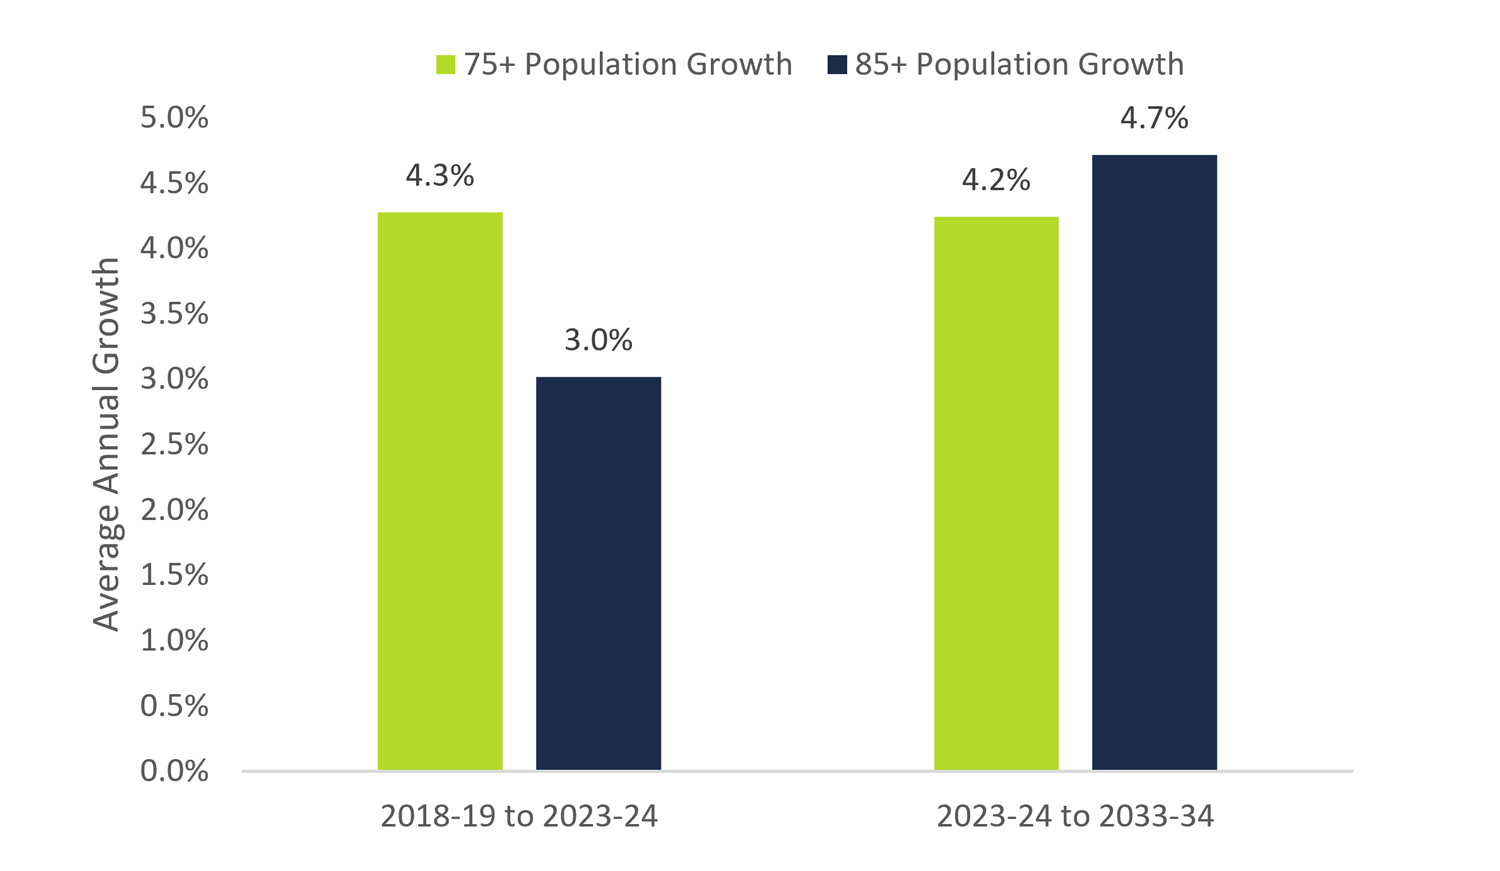 Growth in Ontarians aged 85 and over will accelerate over the long-term